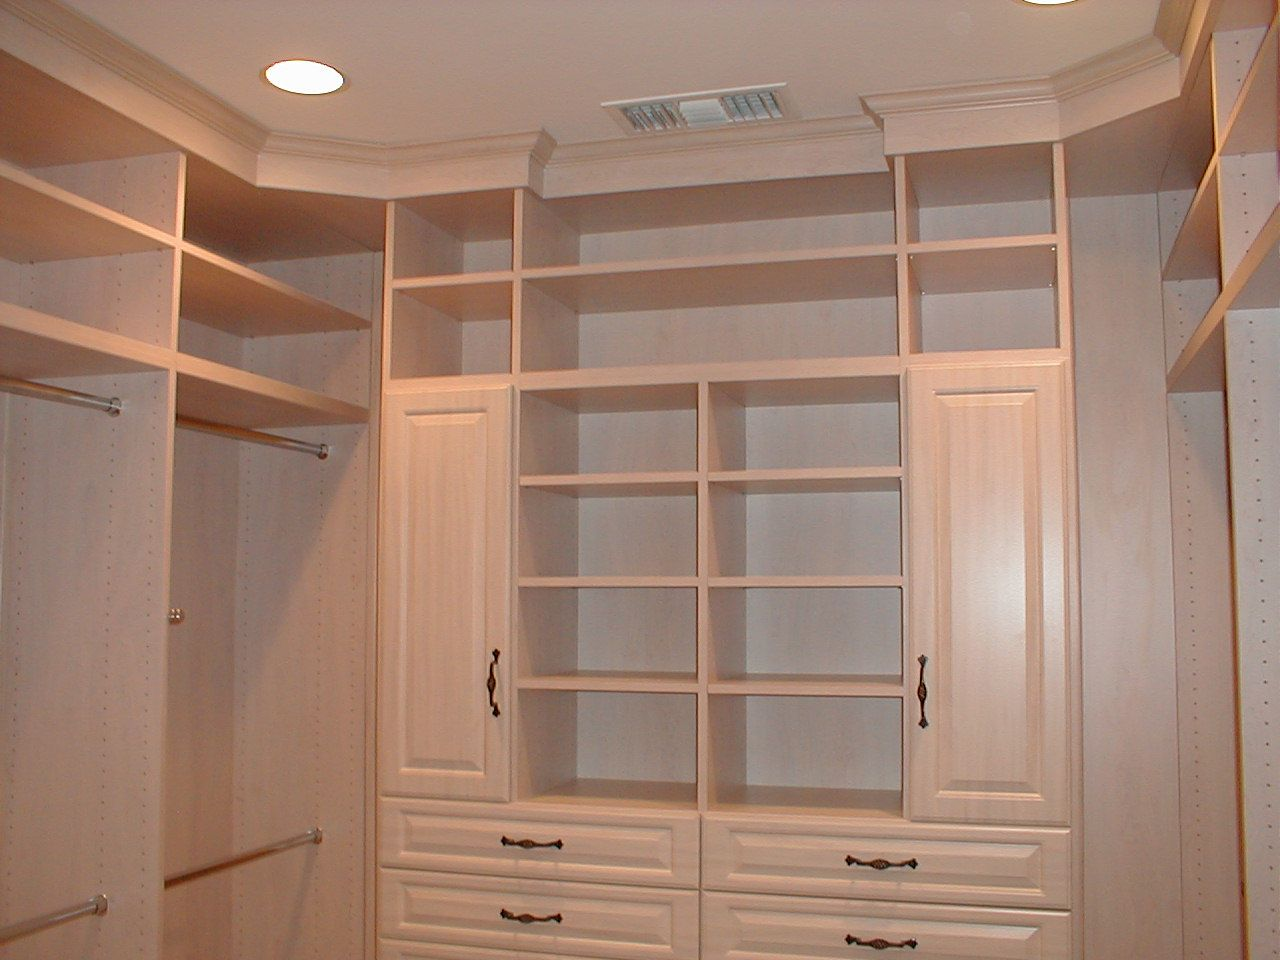 Custom Closet Design. Custom Closet Design   Closet designs  Custom closet design and